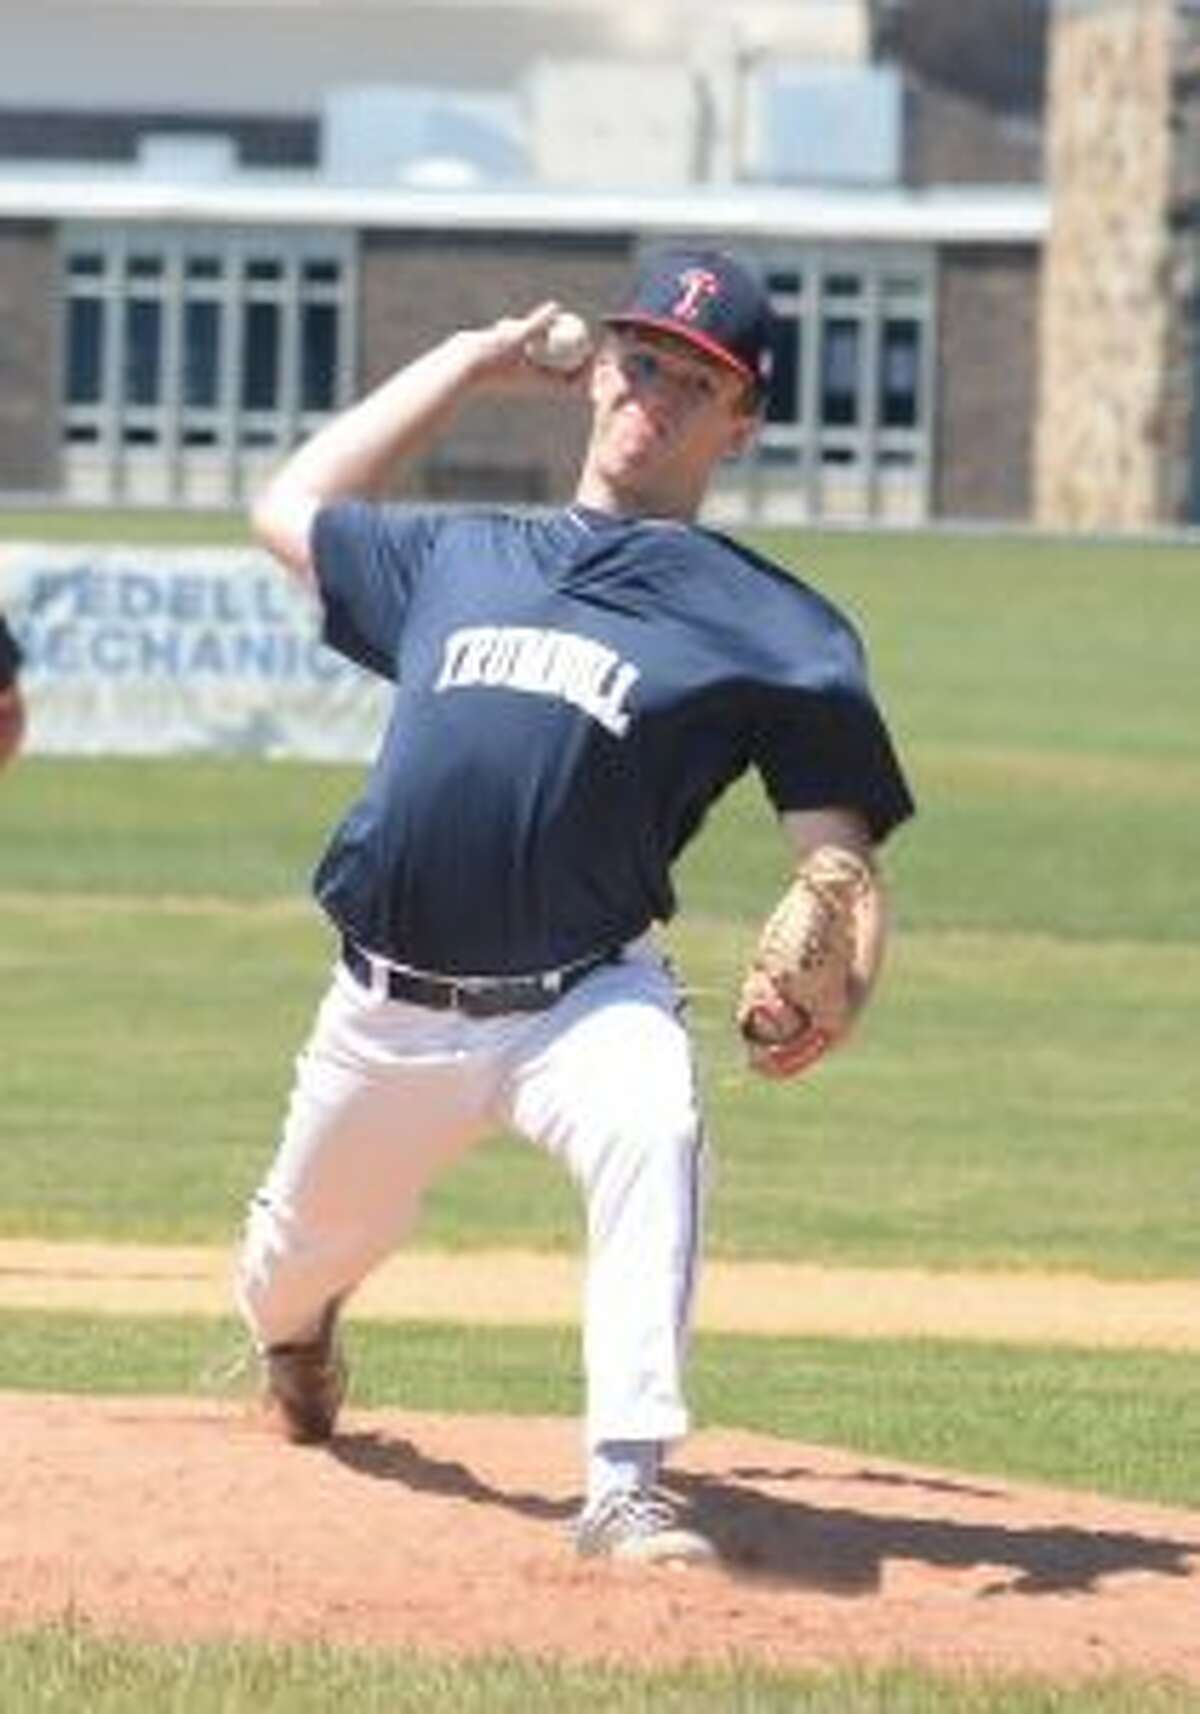 Ryan Vawter tossed two scoreless innings in relief, striking out two.